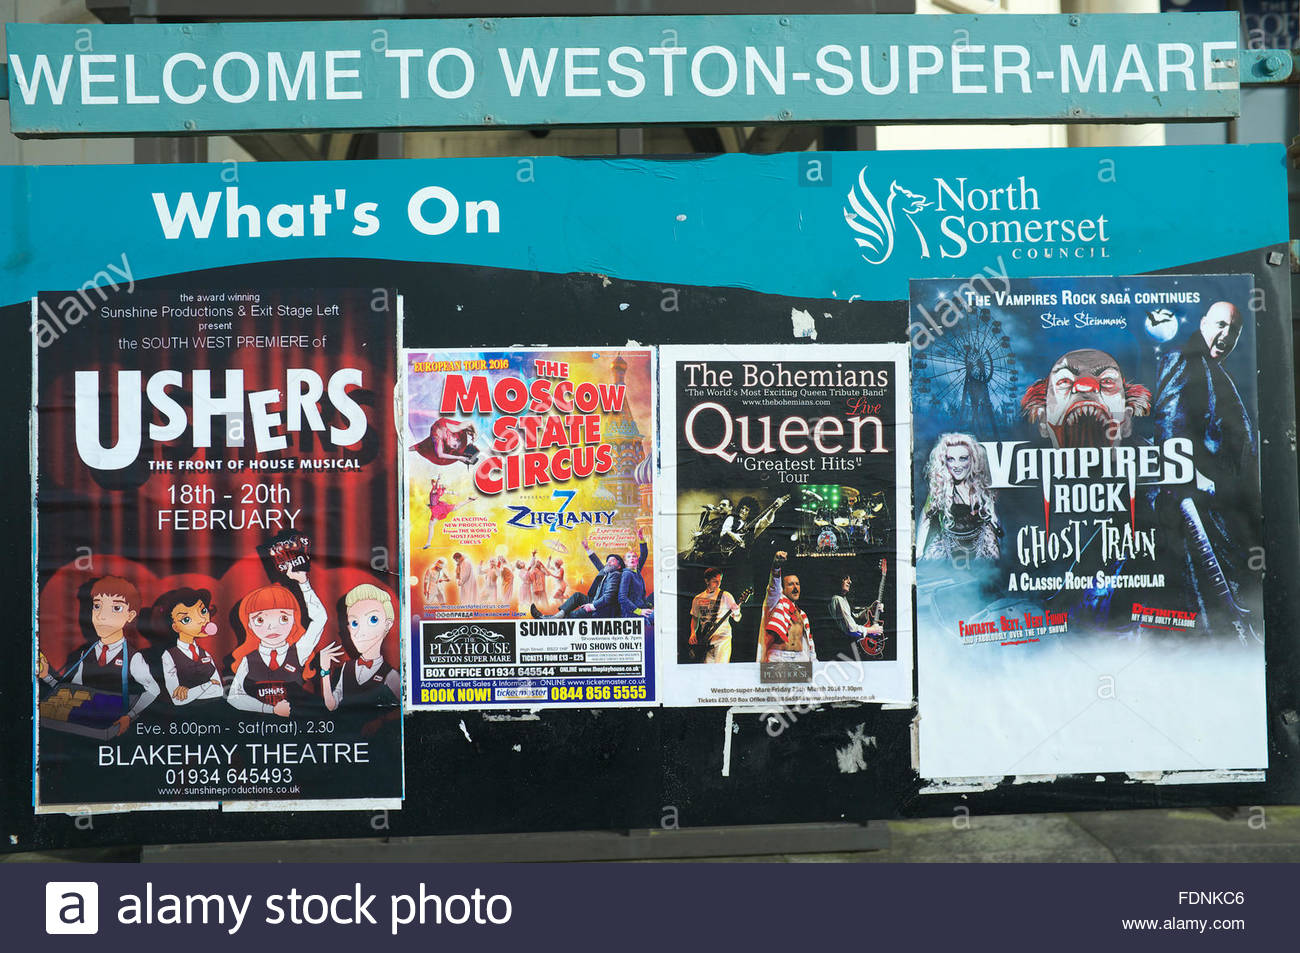 Seaside entertainment posters, in Weston-super-Mare, North Somerset, UK. - Stock Image